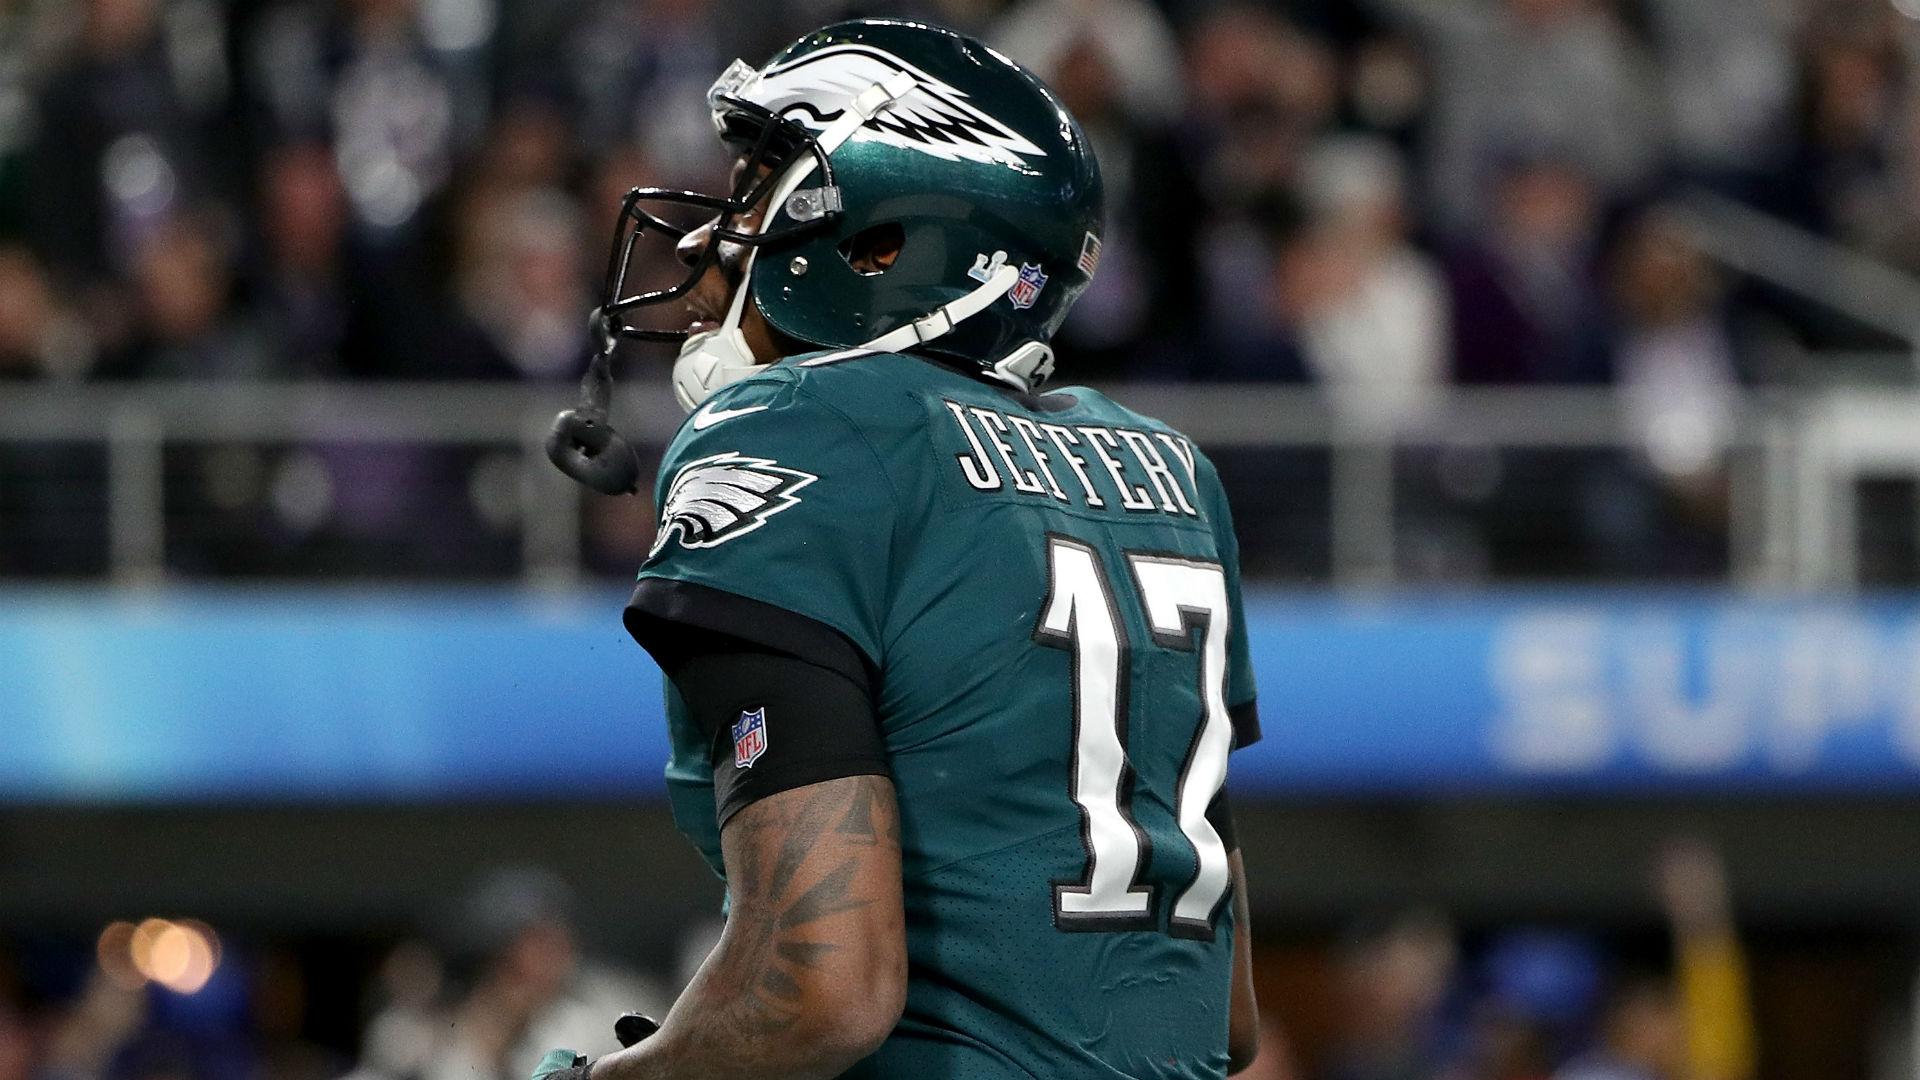 Eagles WR Alshon Jeffery has surgery to fix torn rotator cuff